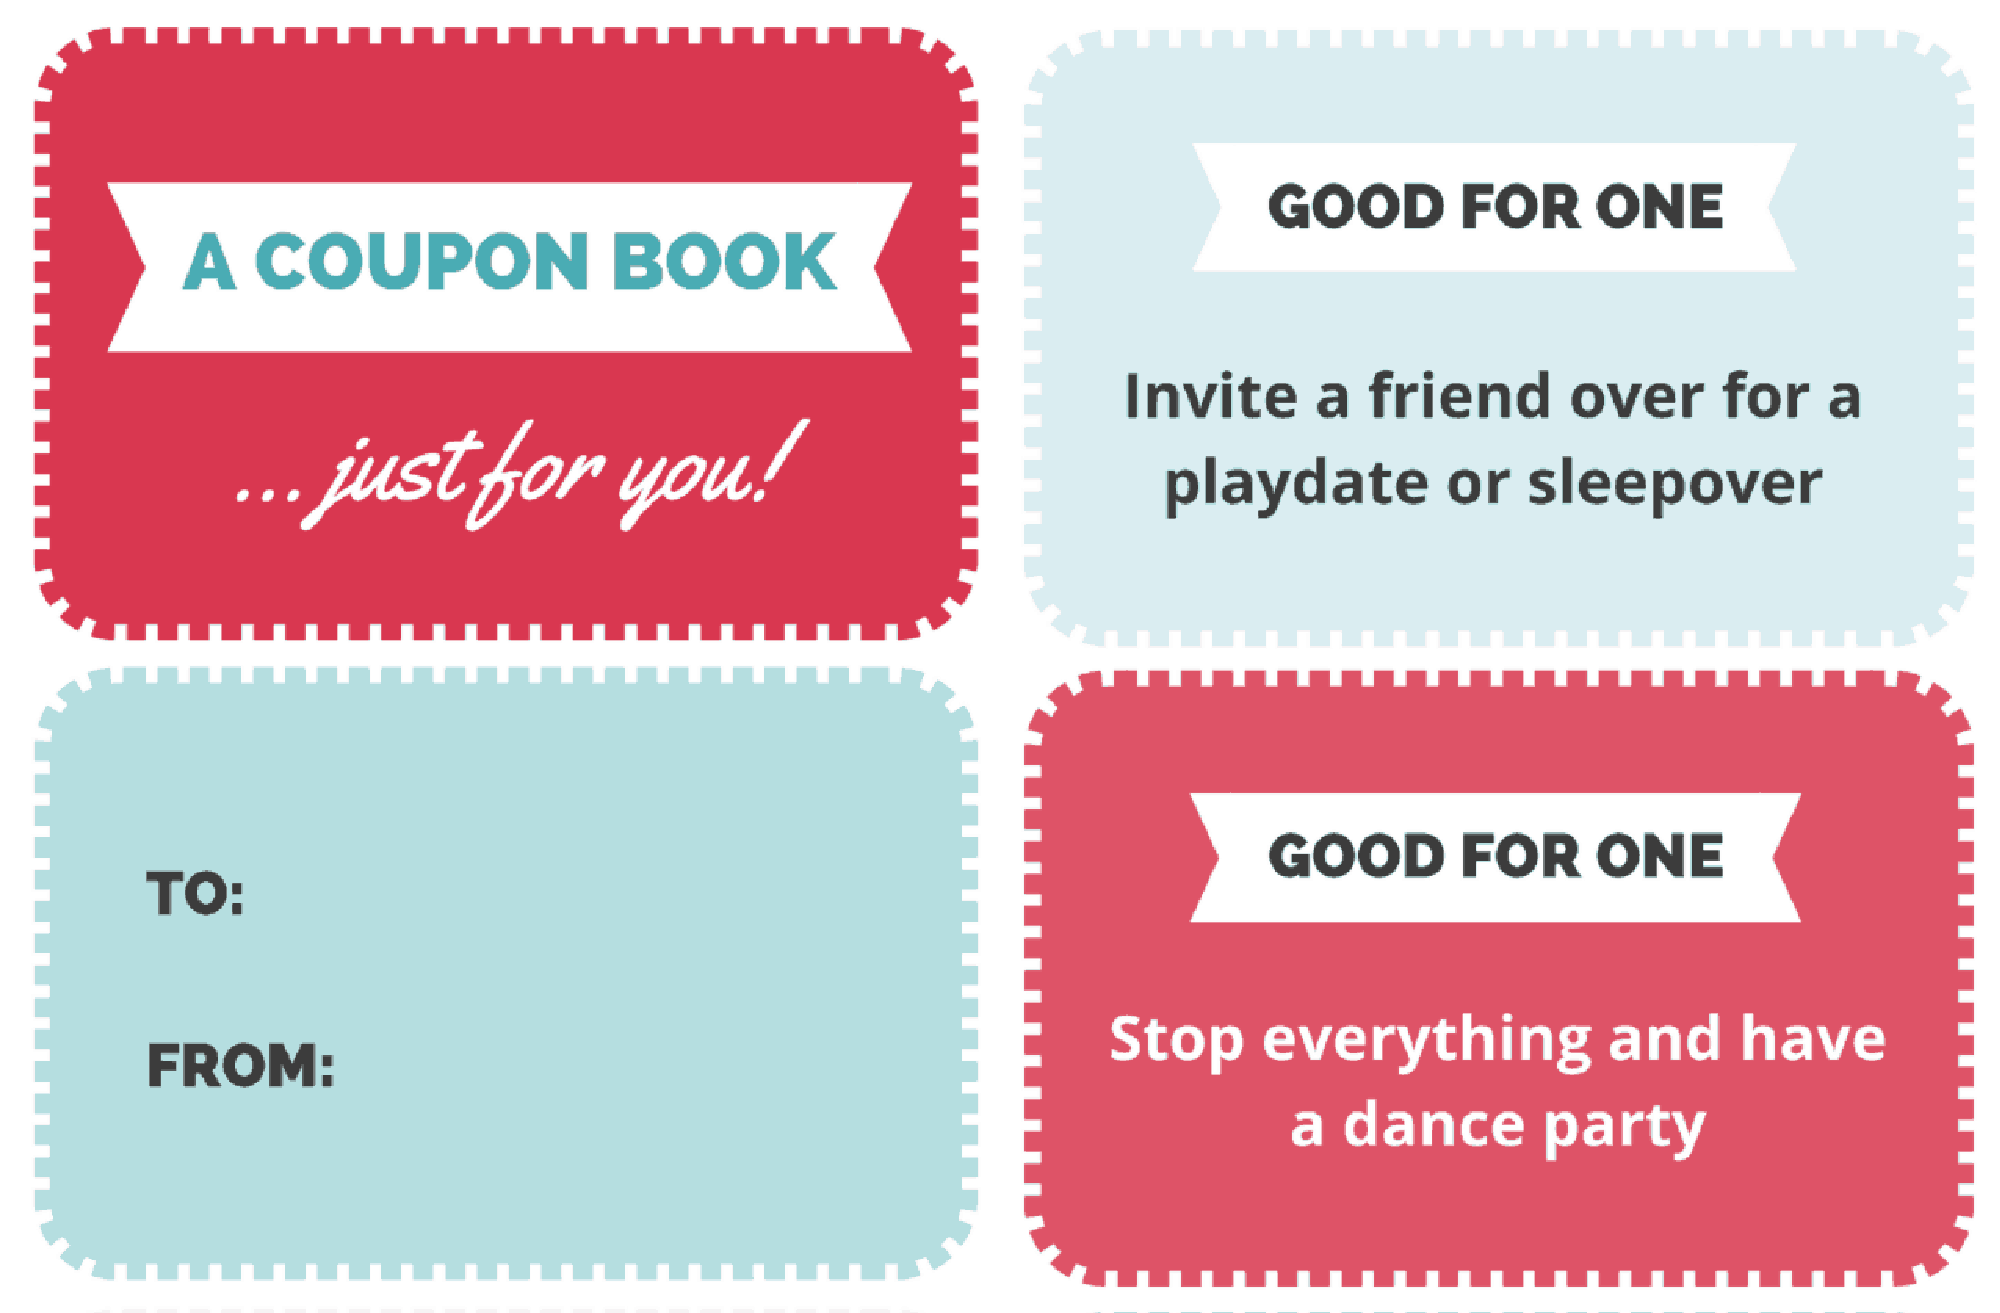 A Free Printable Coupon Book for Kids That Makes the Best Gift